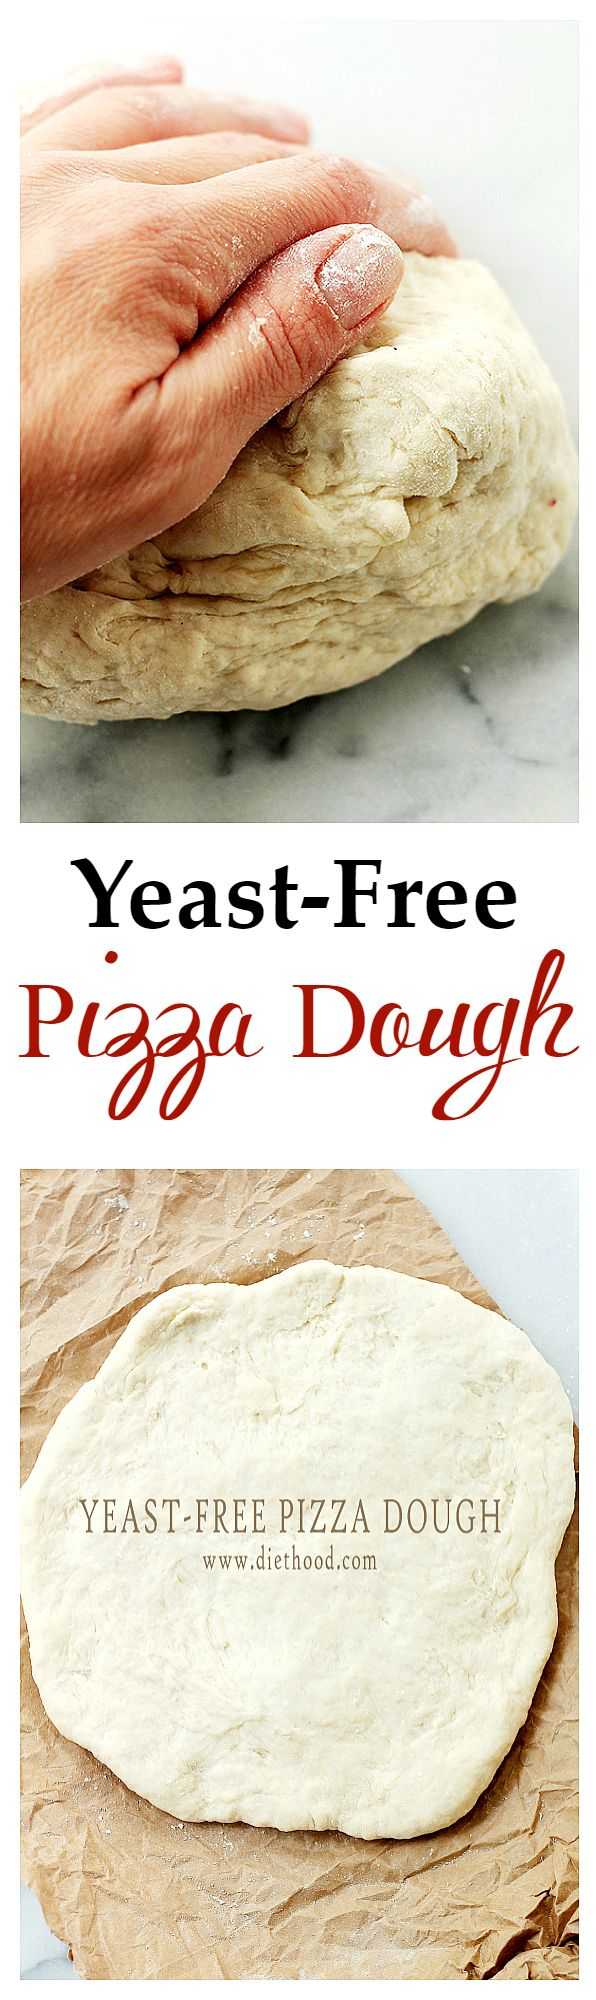 Yeast Free Pizza Dough